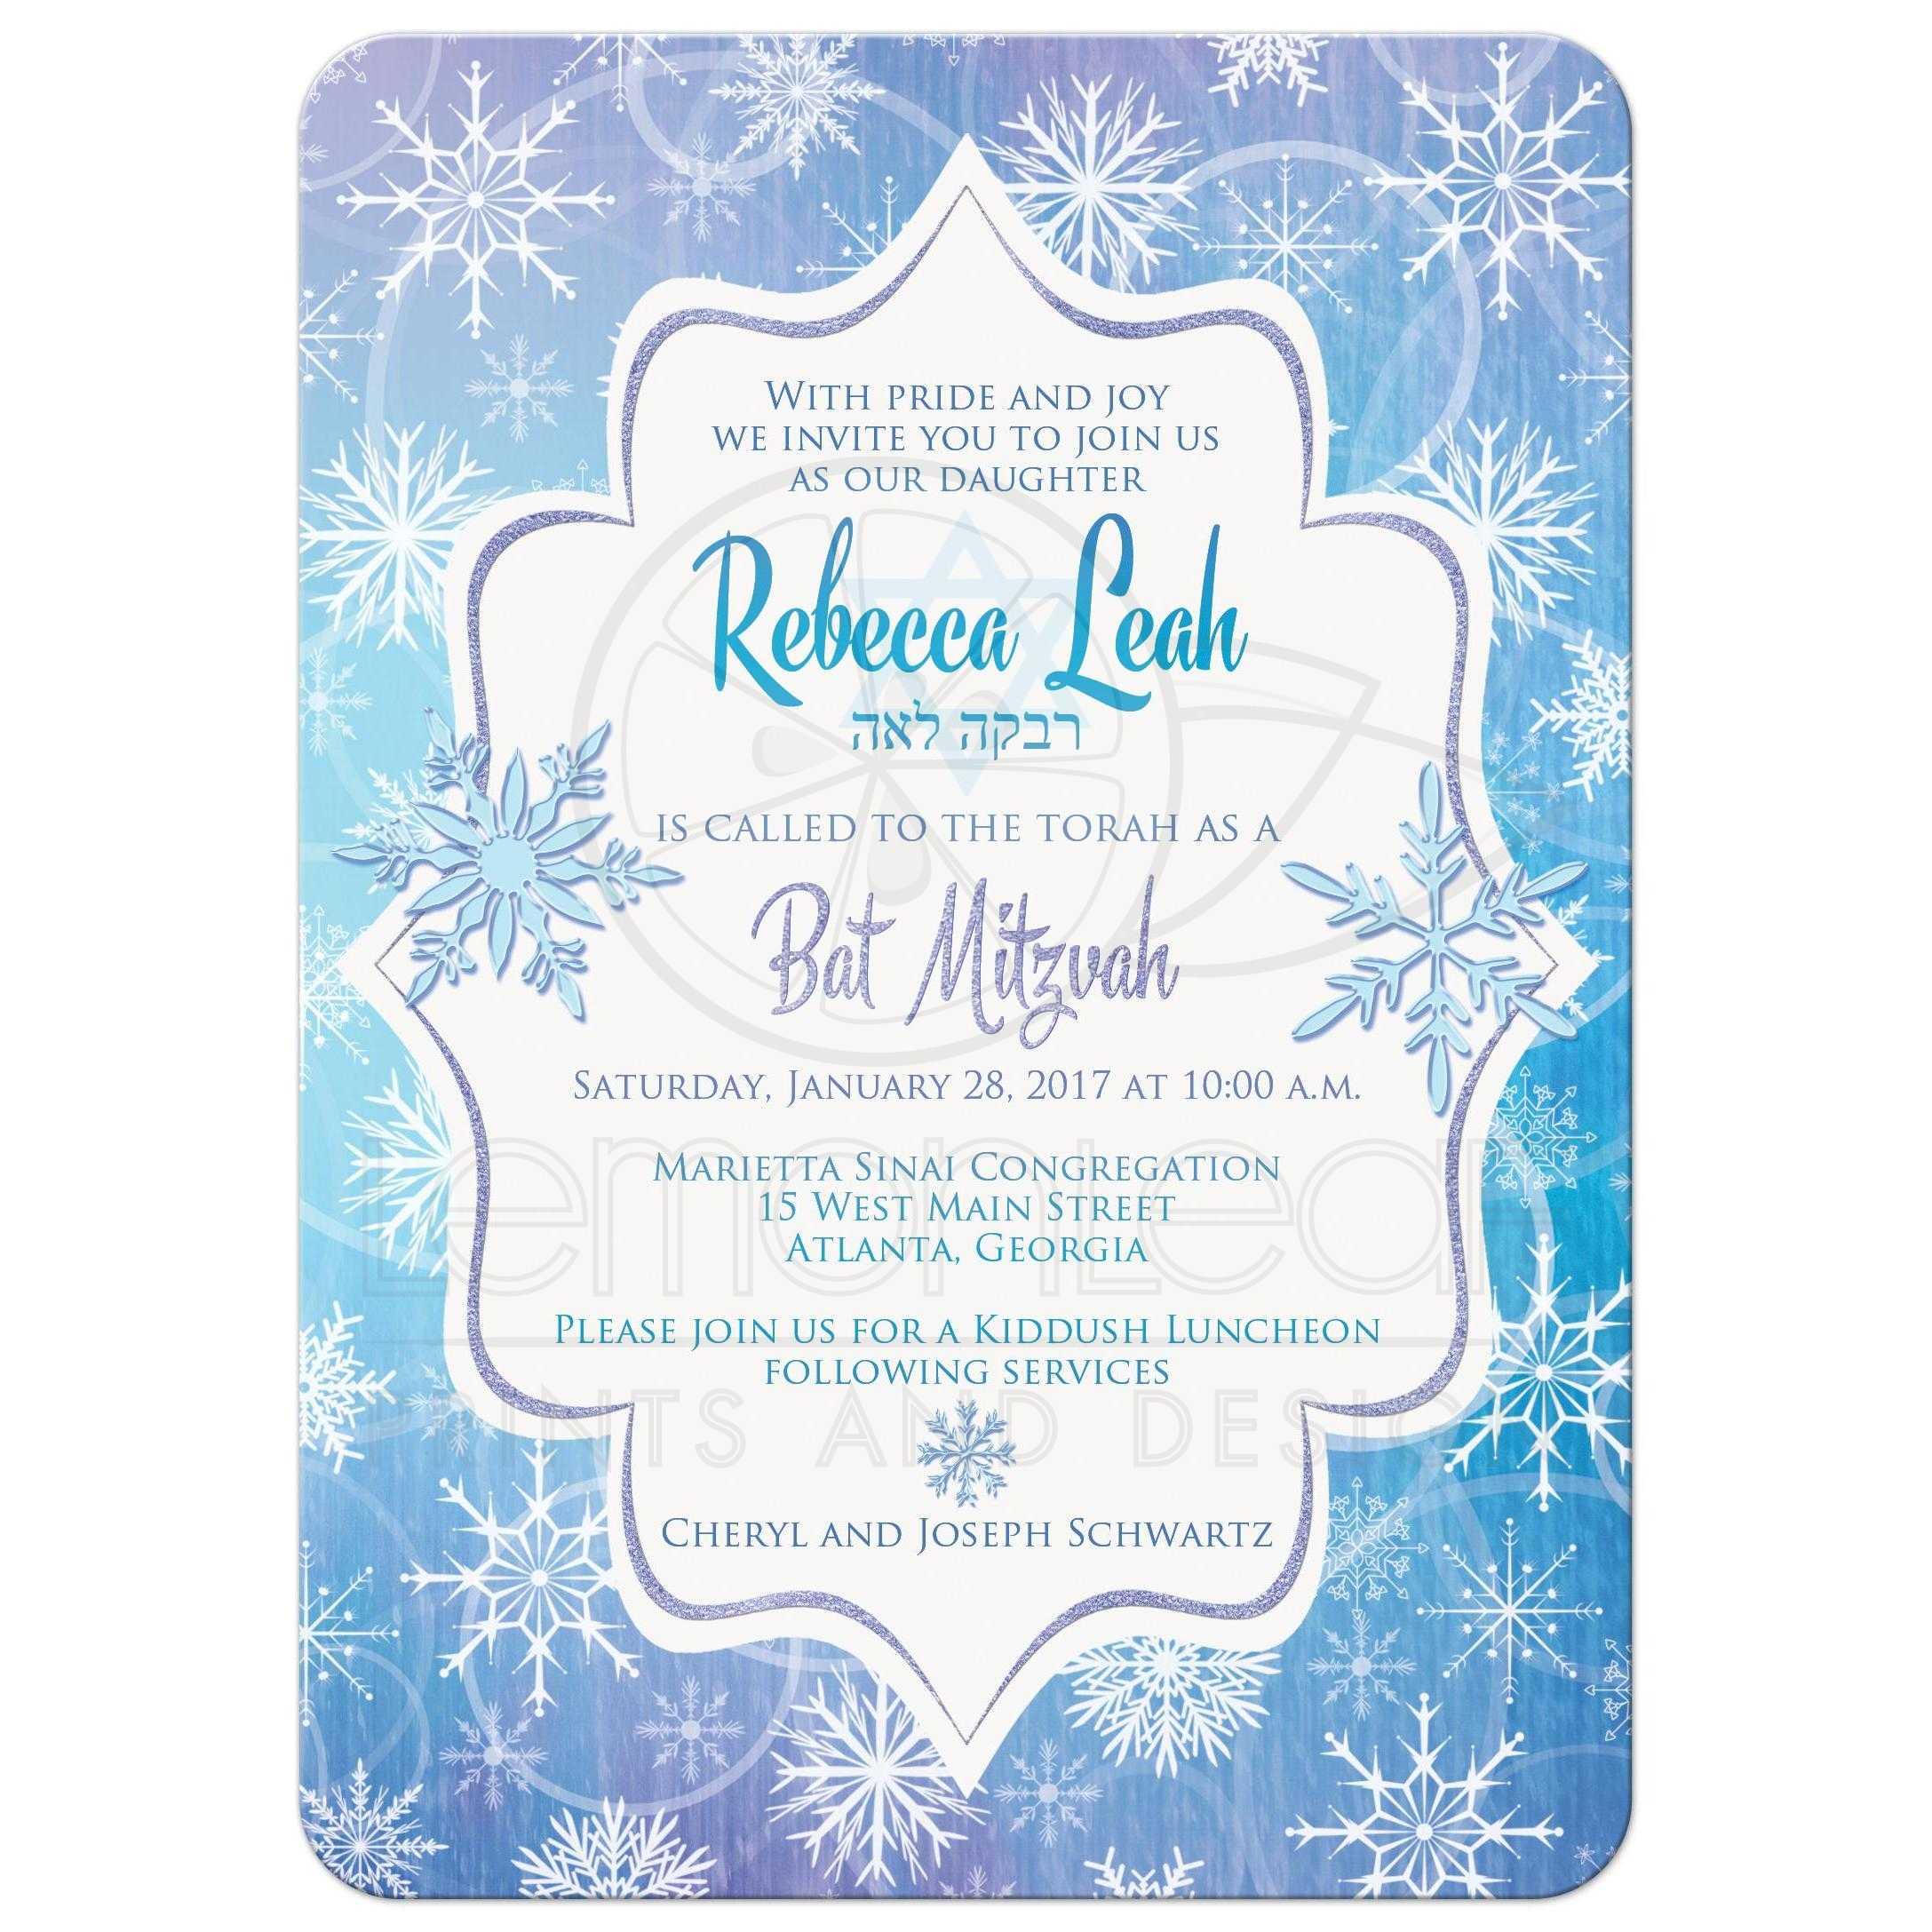 Frosty Bat Mitzvah Invitation Blue Purple White Snowflakes Bokeh